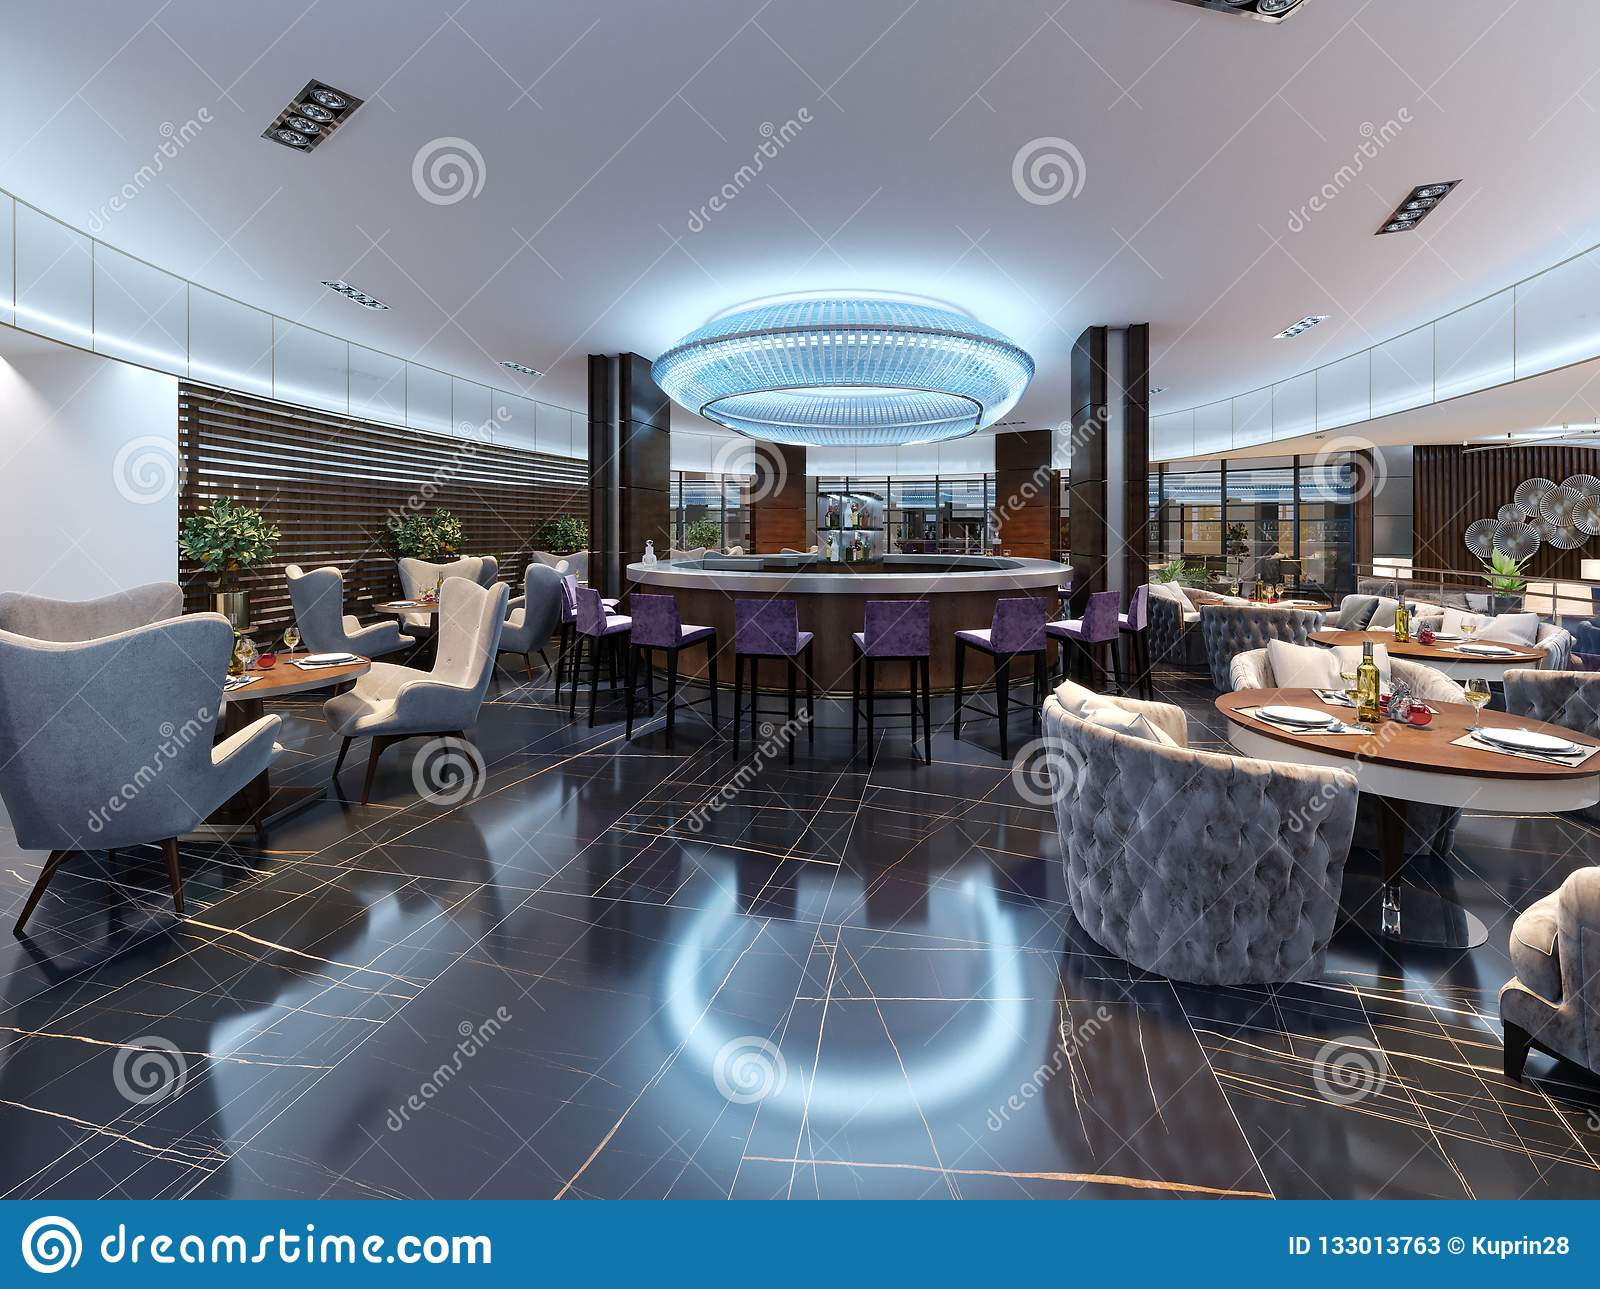 Modern Bar Restaurant In A Luxurious Modern Style With Elegant Furniture And Lighting Stock Illustration Illustration Of Design Hall 133013763